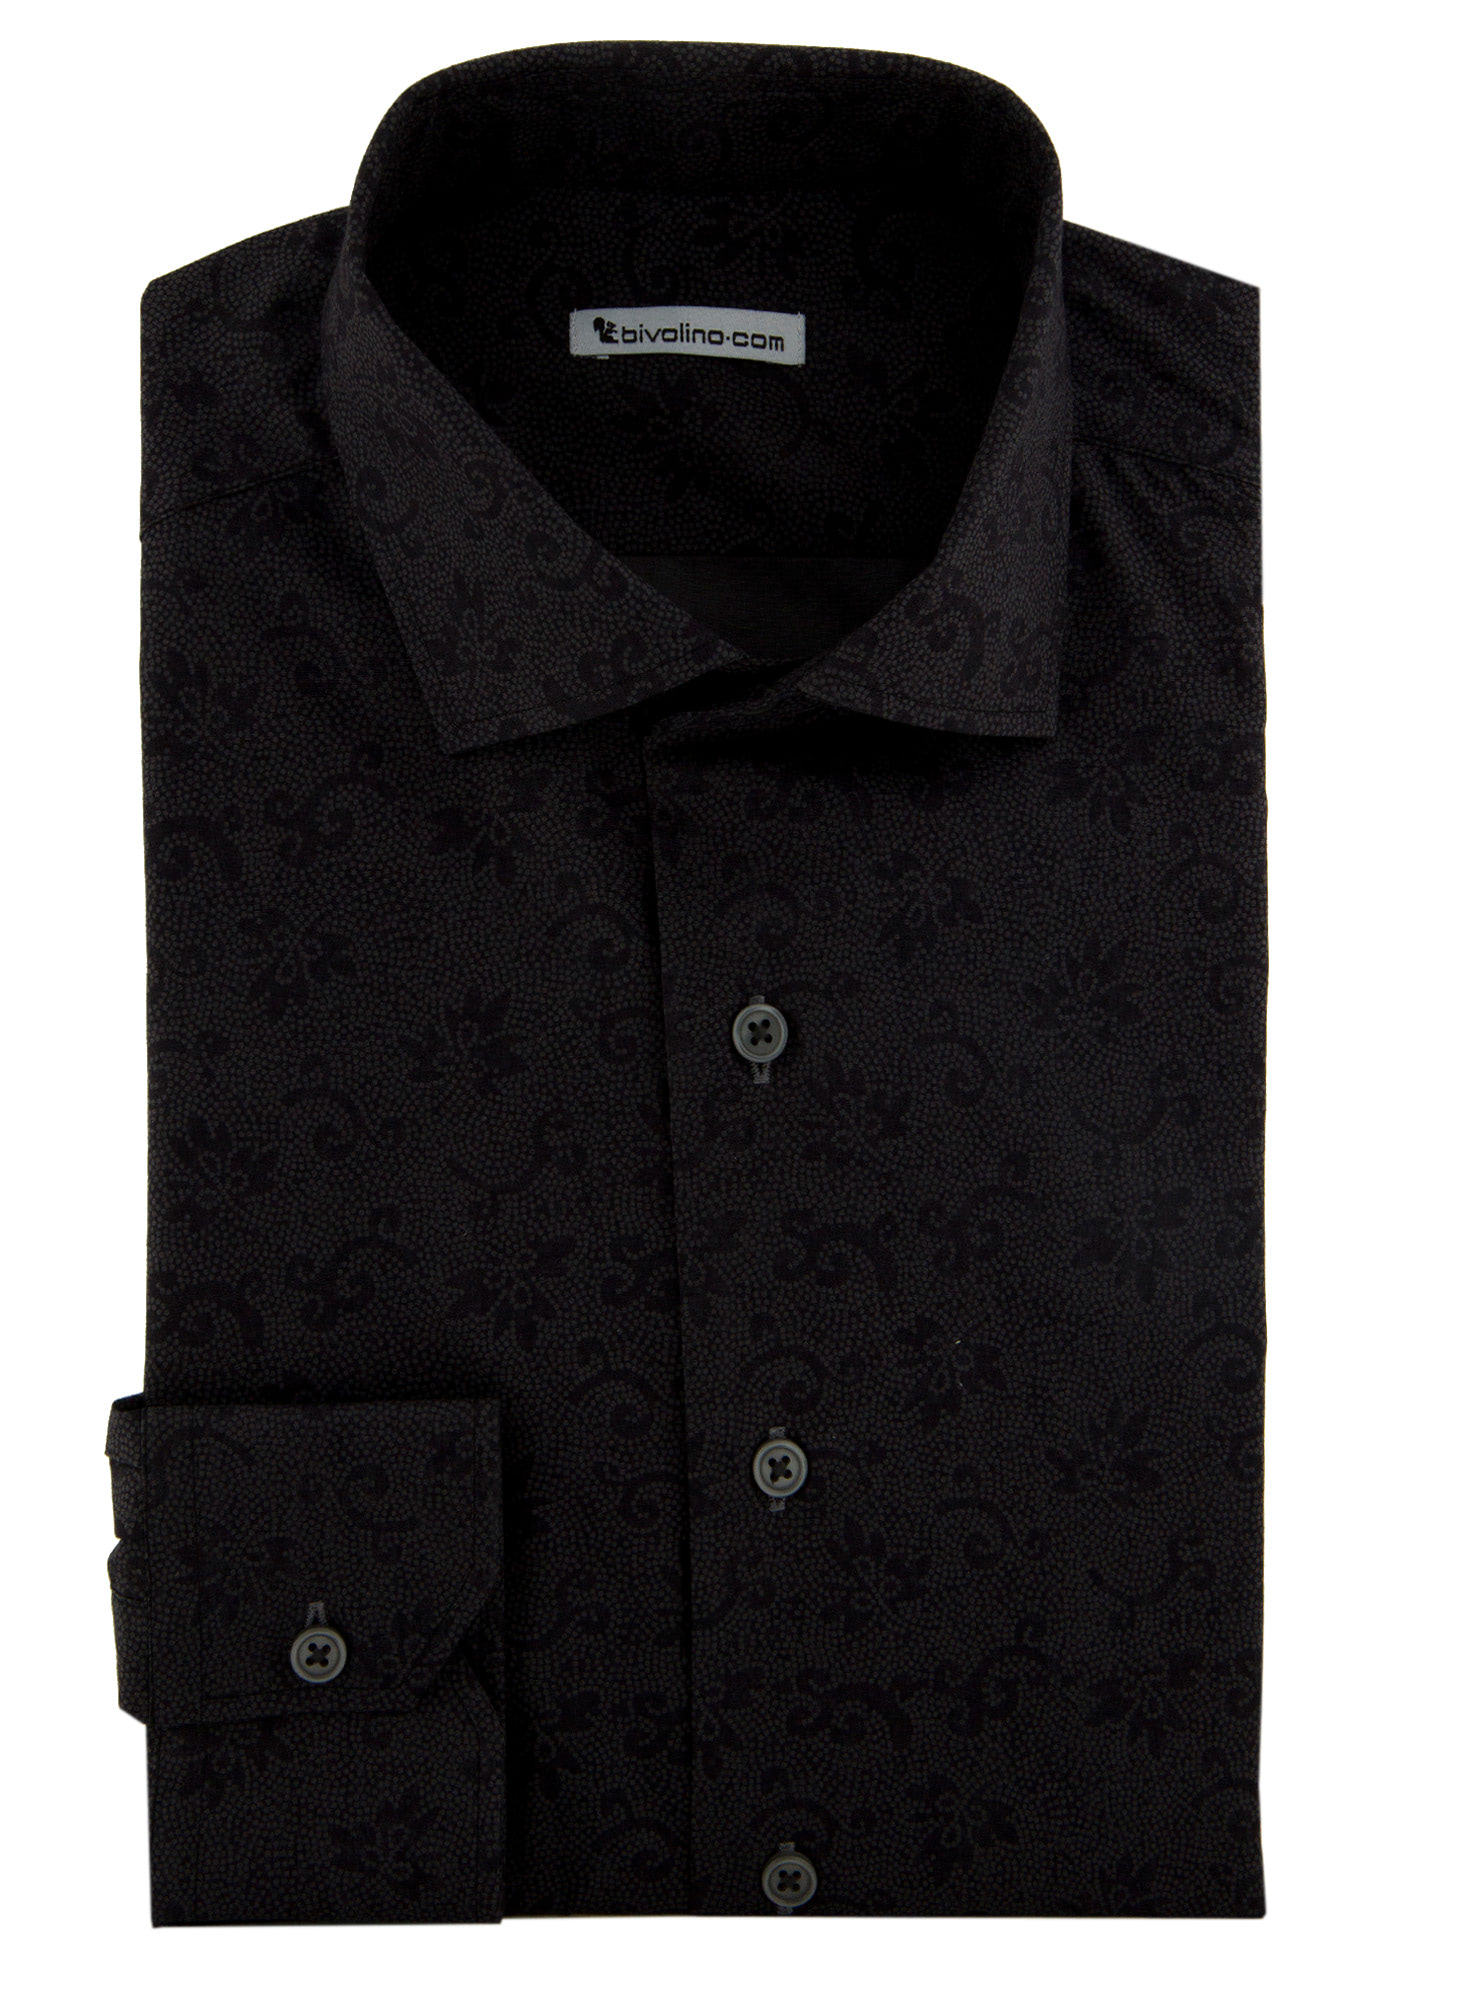 Bardolino - Printed shirt with black flowerprint - PARTO 1